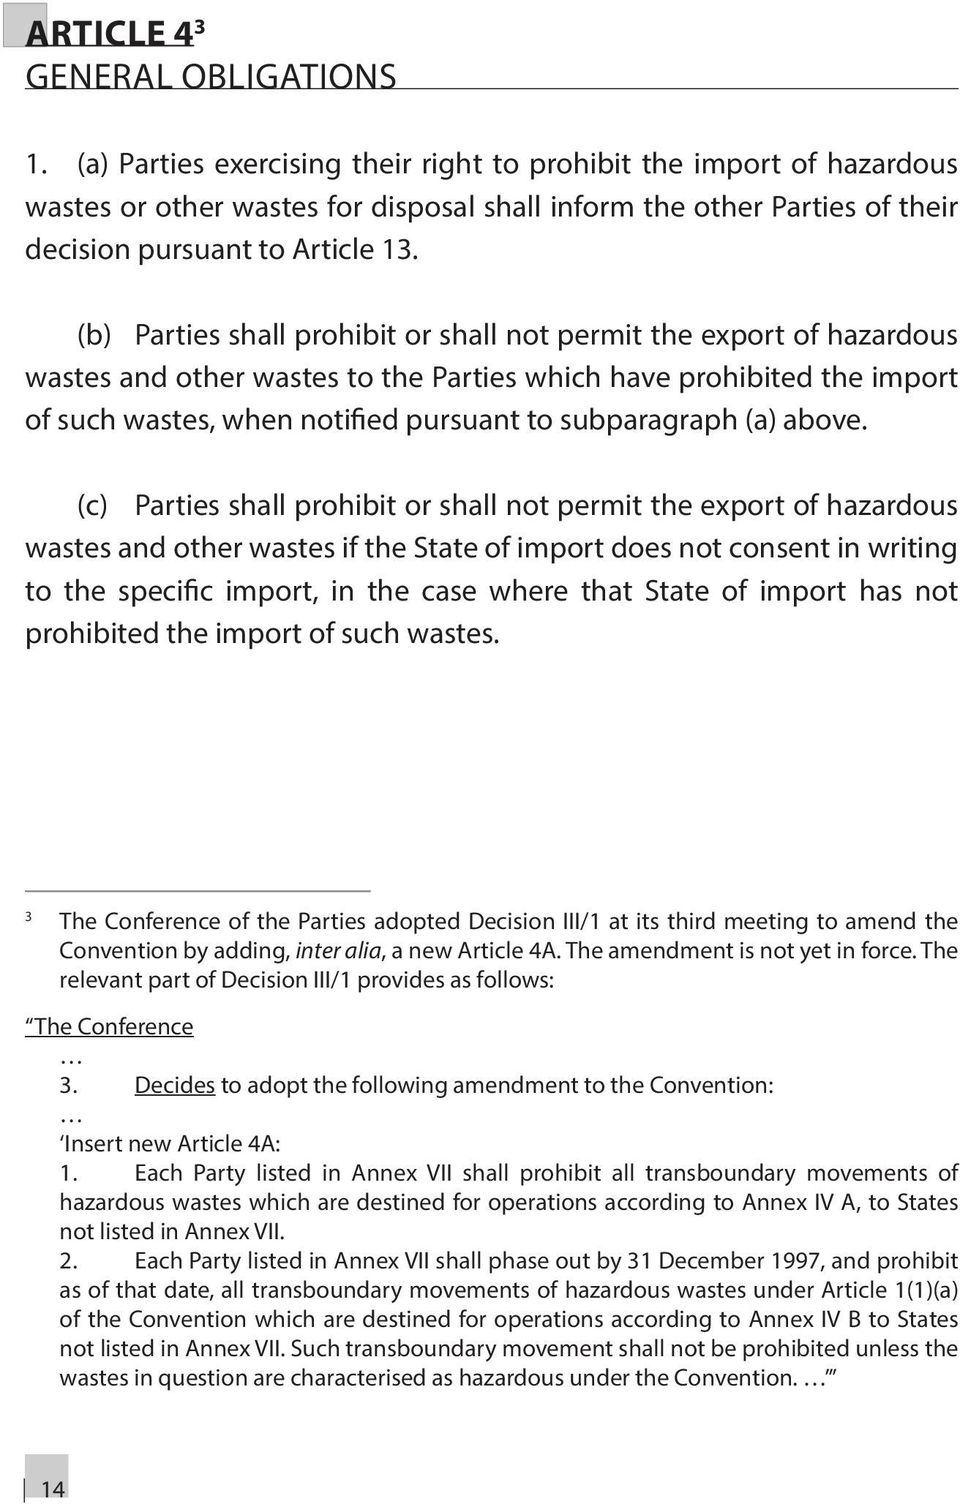 (b) Parties shall prohibit or shall not permit the export of hazardous wastes and other wastes to the Parties which have prohibited the import of such wastes, when notified pursuant to subparagraph